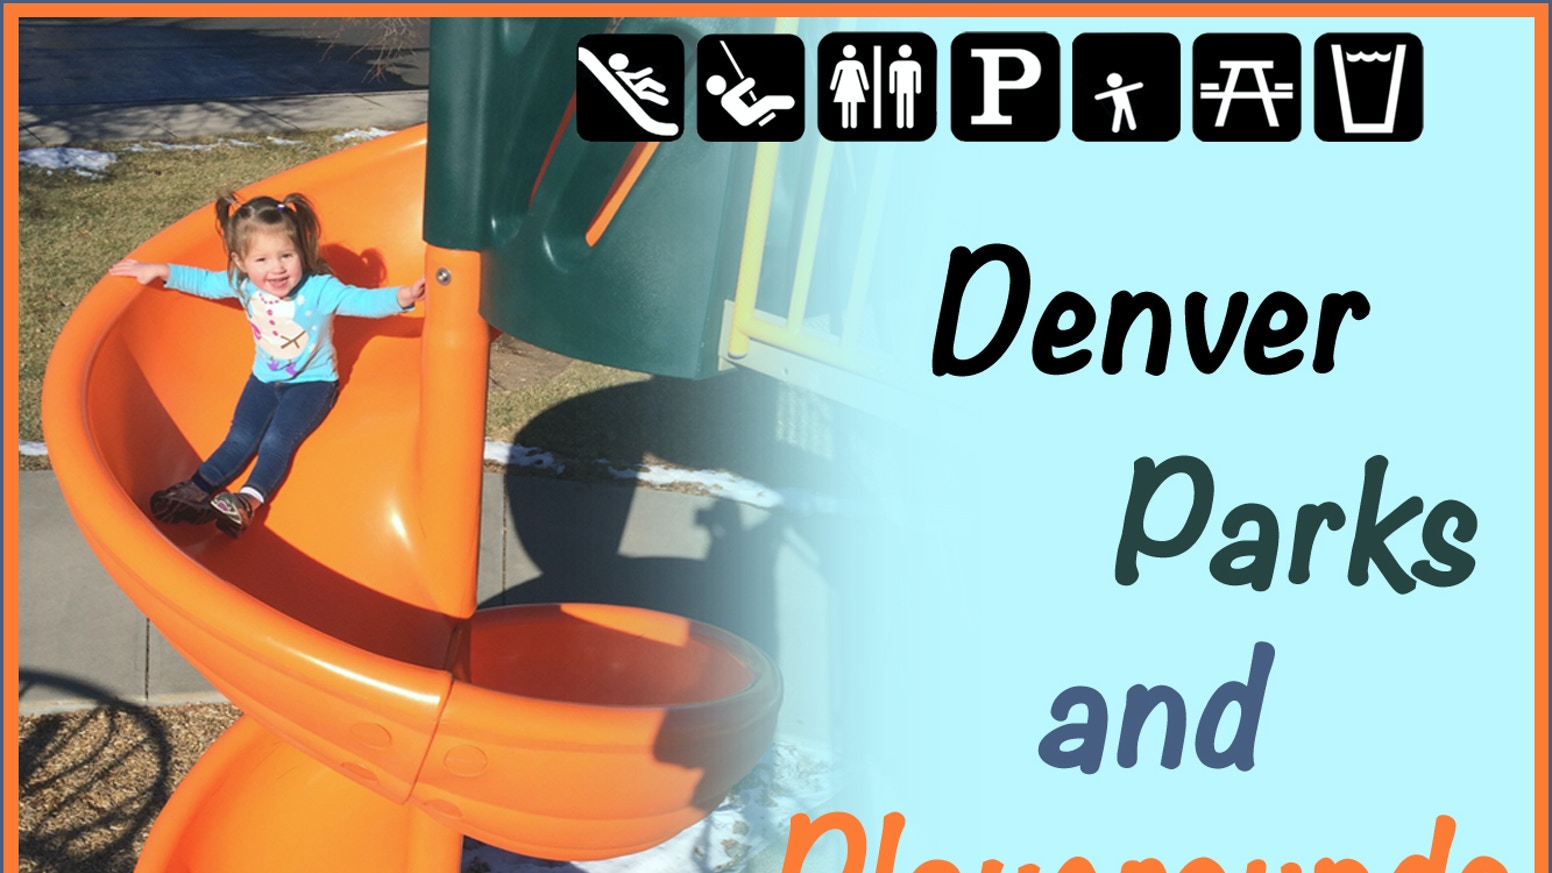 A guide book to over 500 playgrounds & parks in metro Denver. Includes GPS-enabled smartphone app.